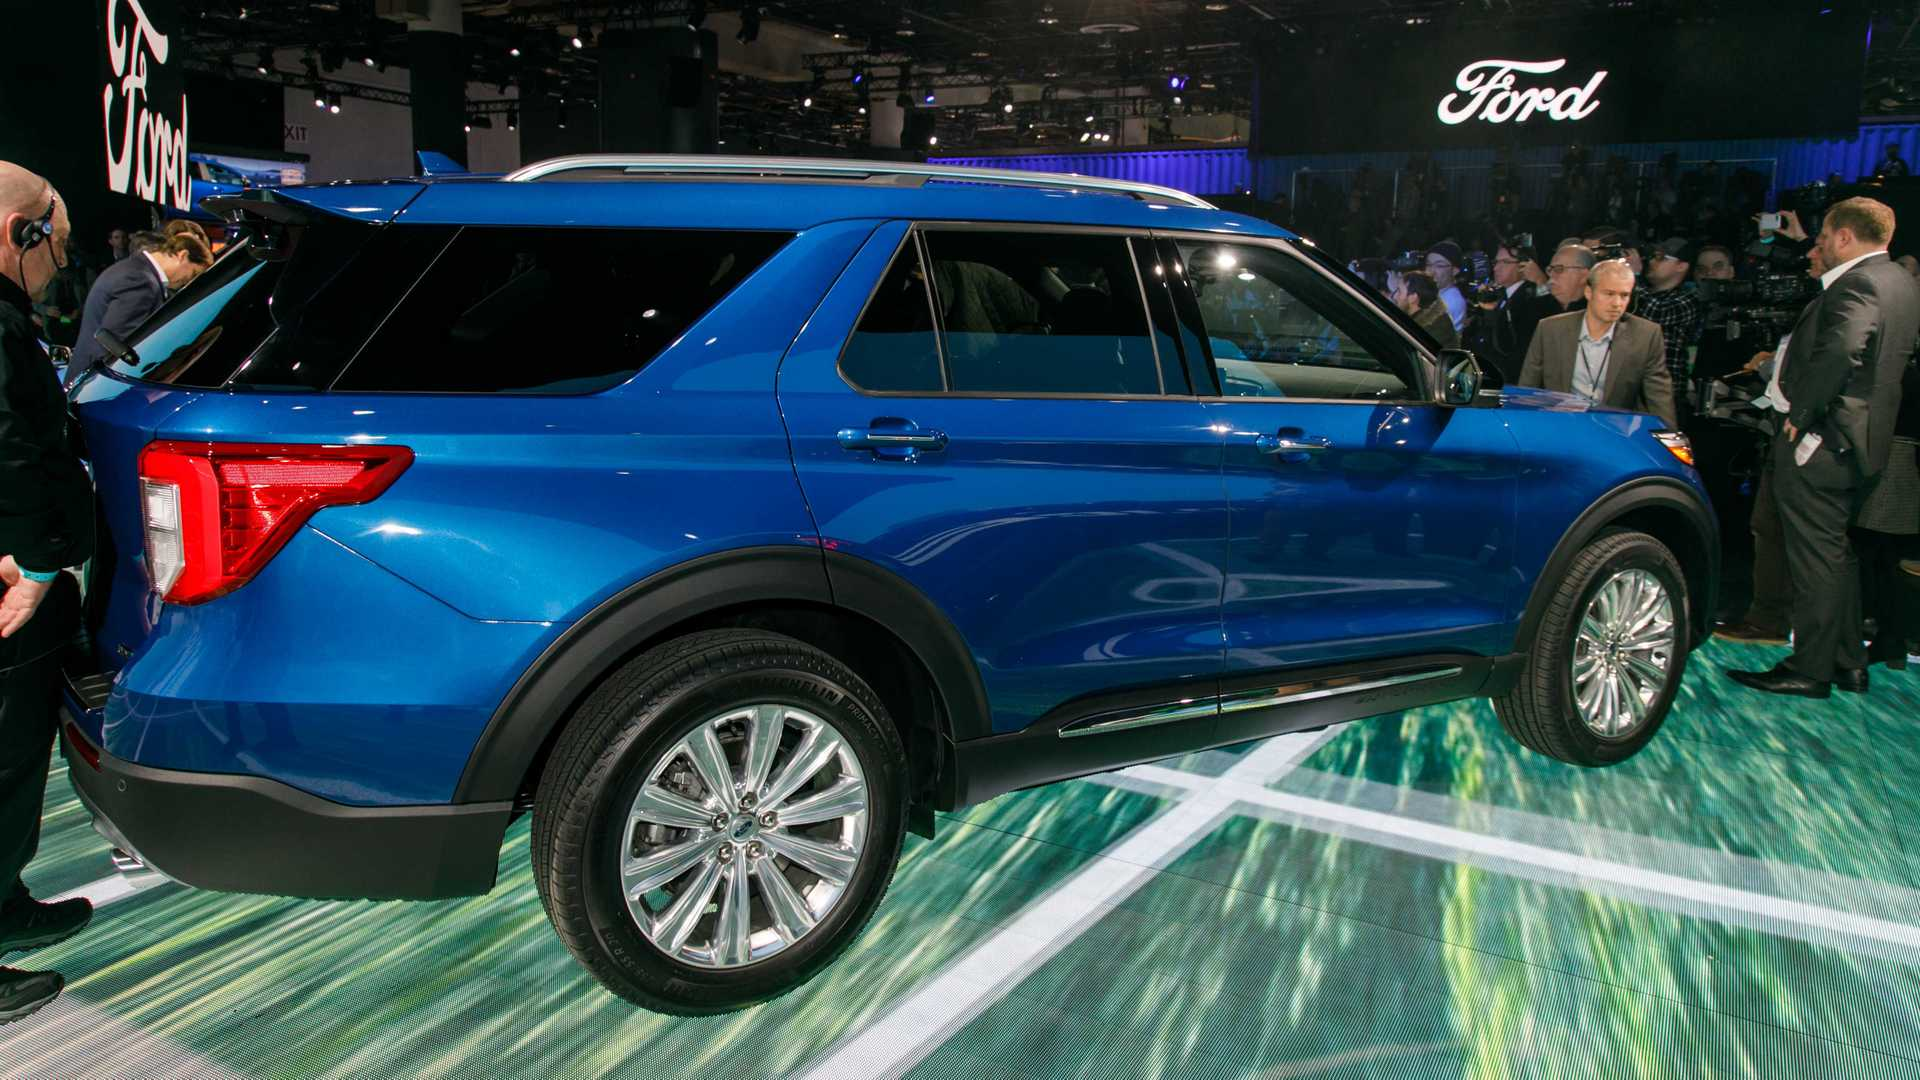 84 Concept of Ford Hybrid Explorer 2020 Pricing for Ford Hybrid Explorer 2020